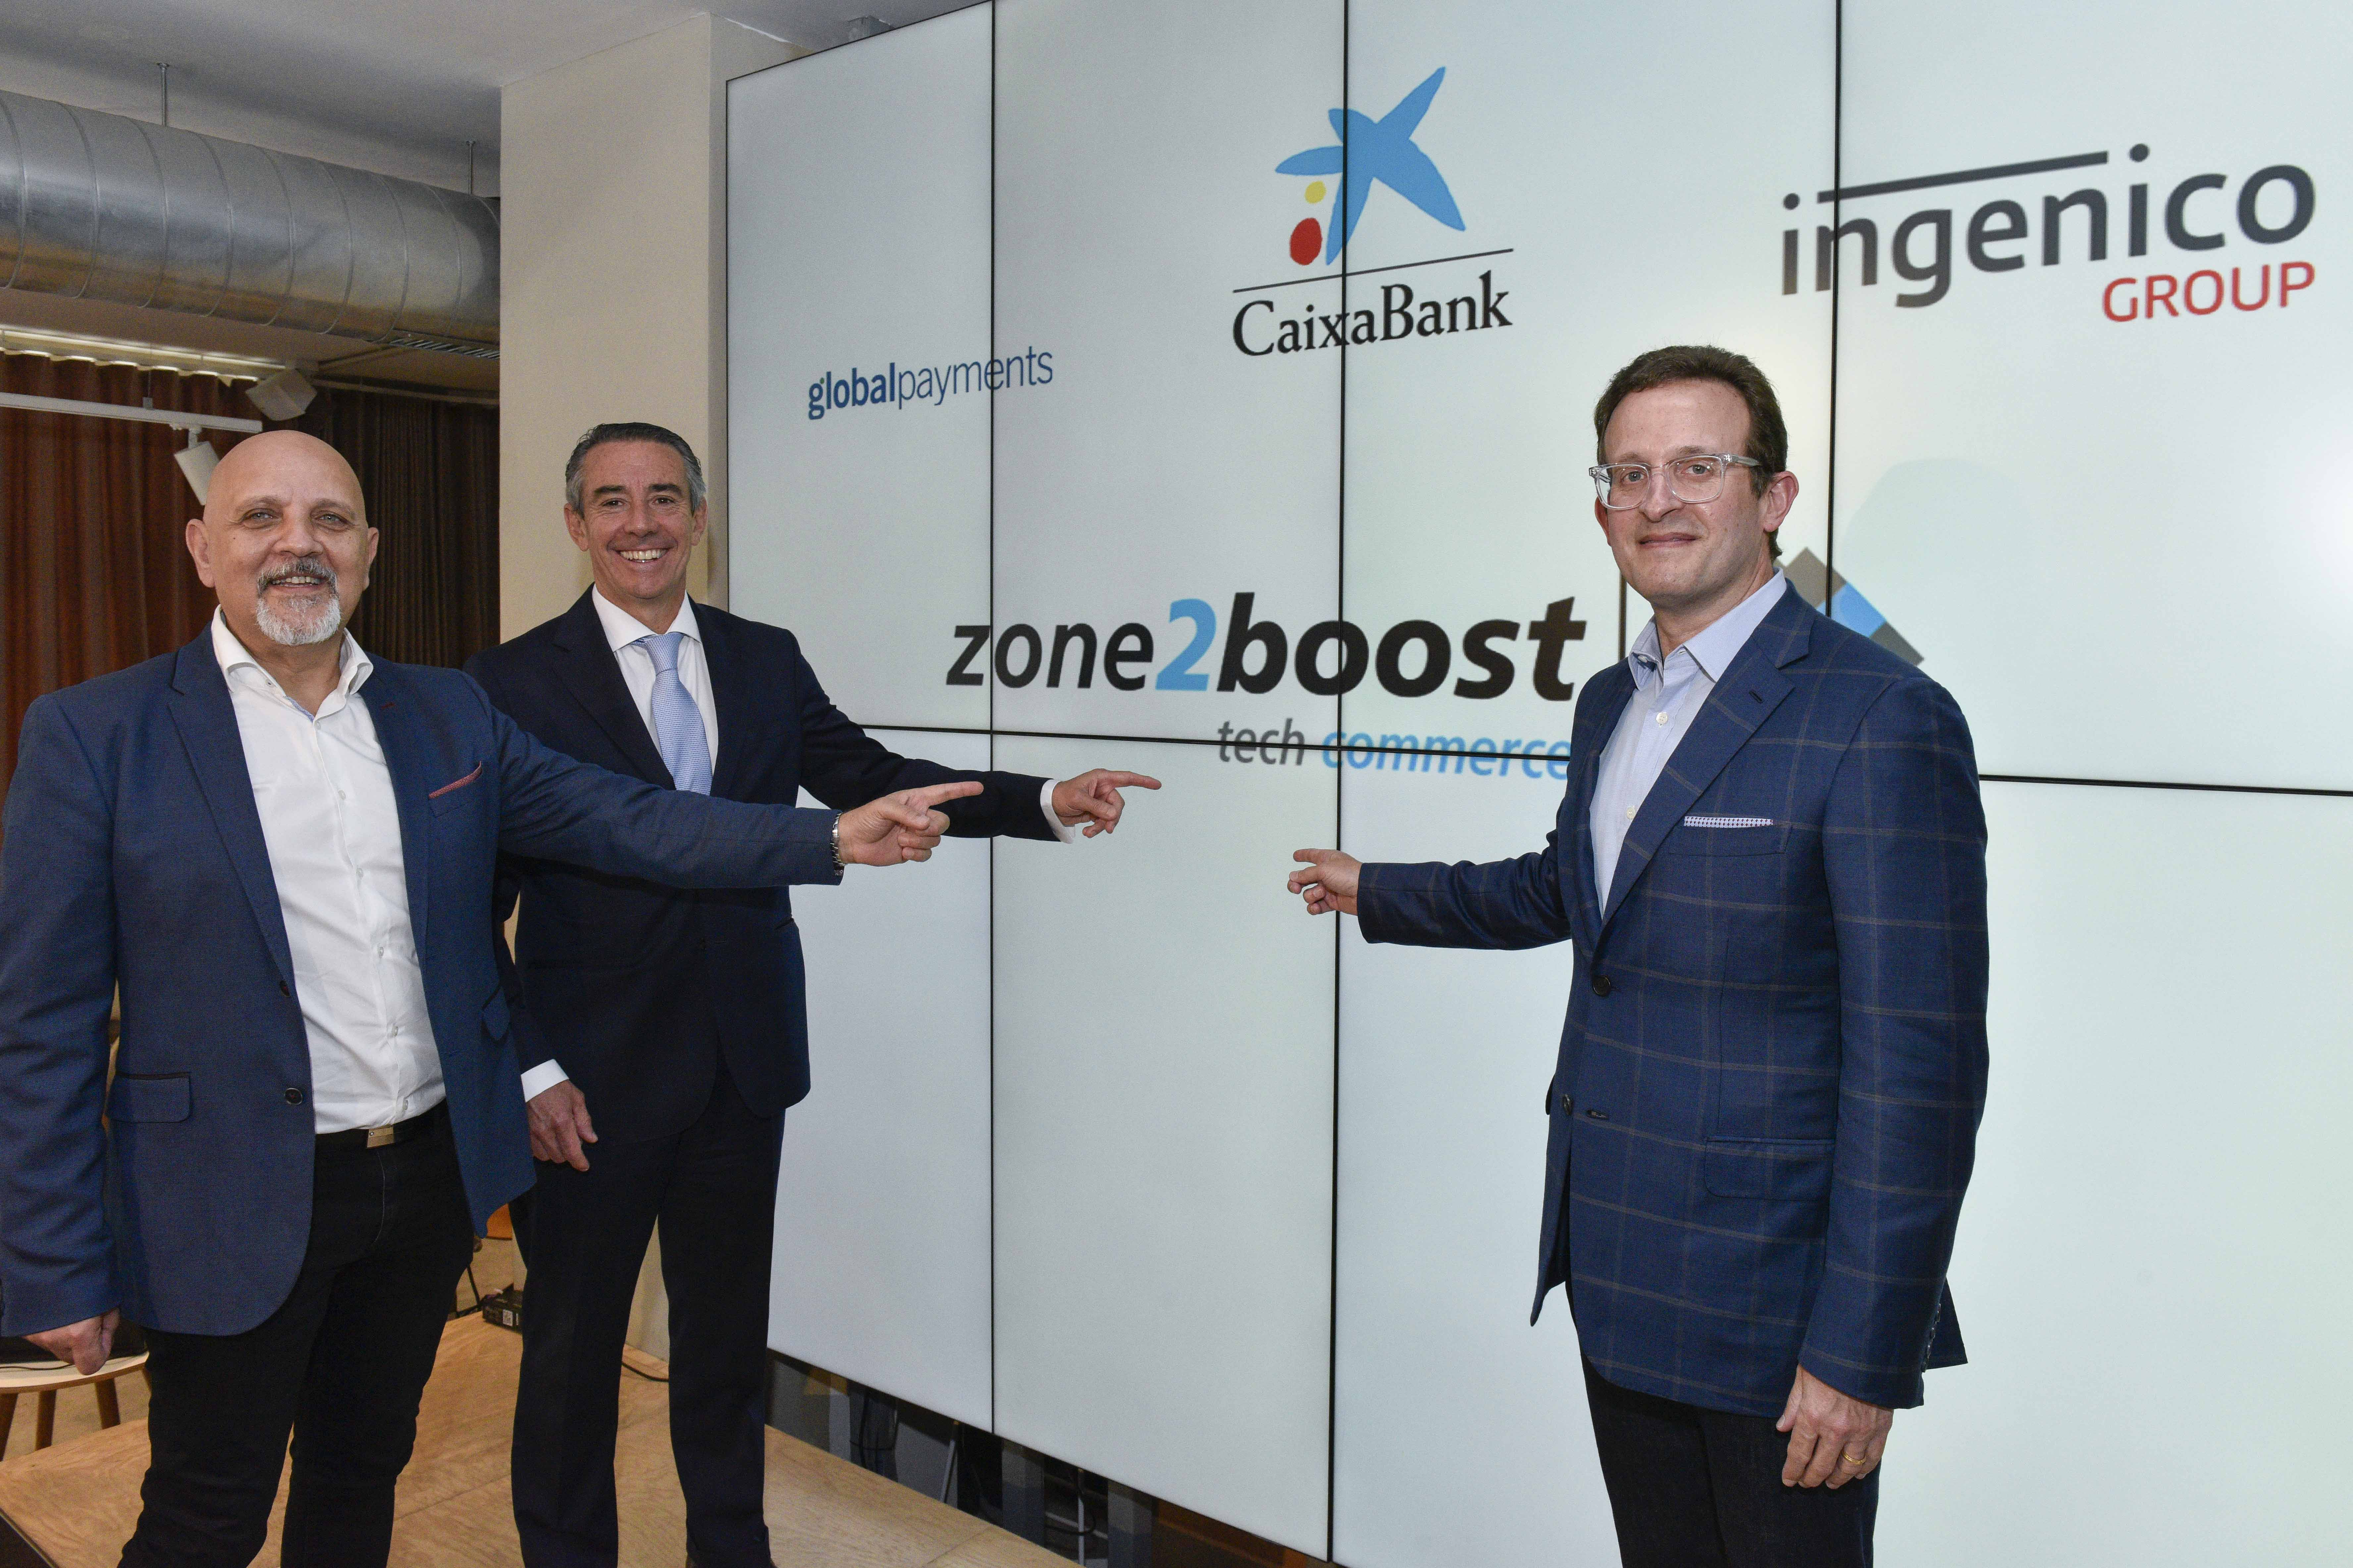 CaixaBank, Global Payments, and Ingenico create innovation programme